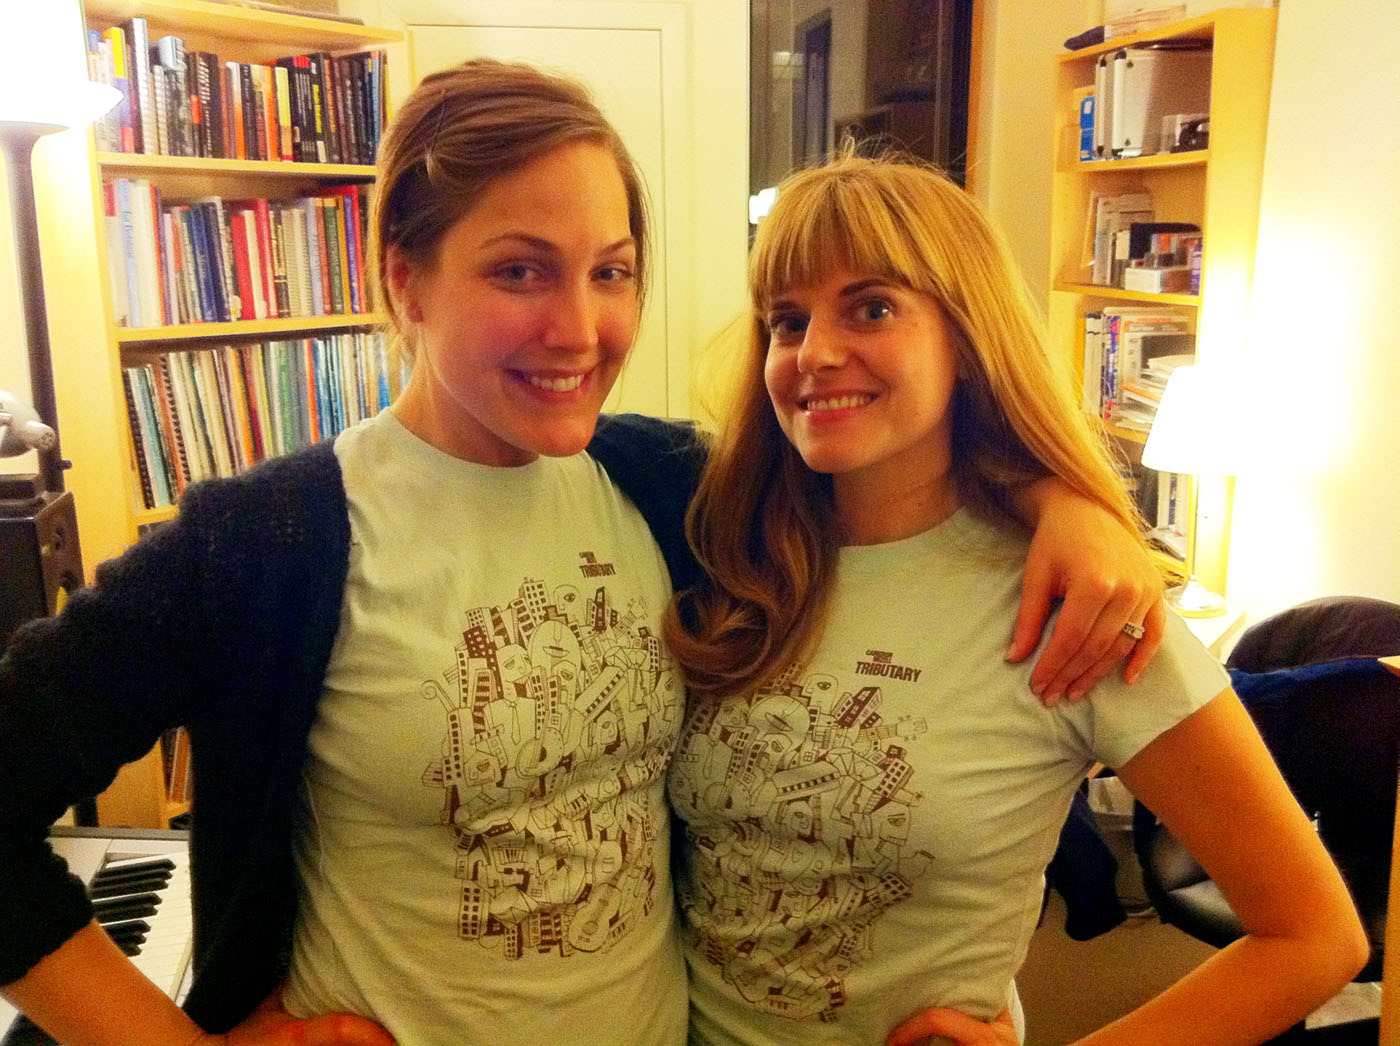 Jill Mizell and Erika Lloyd wearing Tributary t-shirts